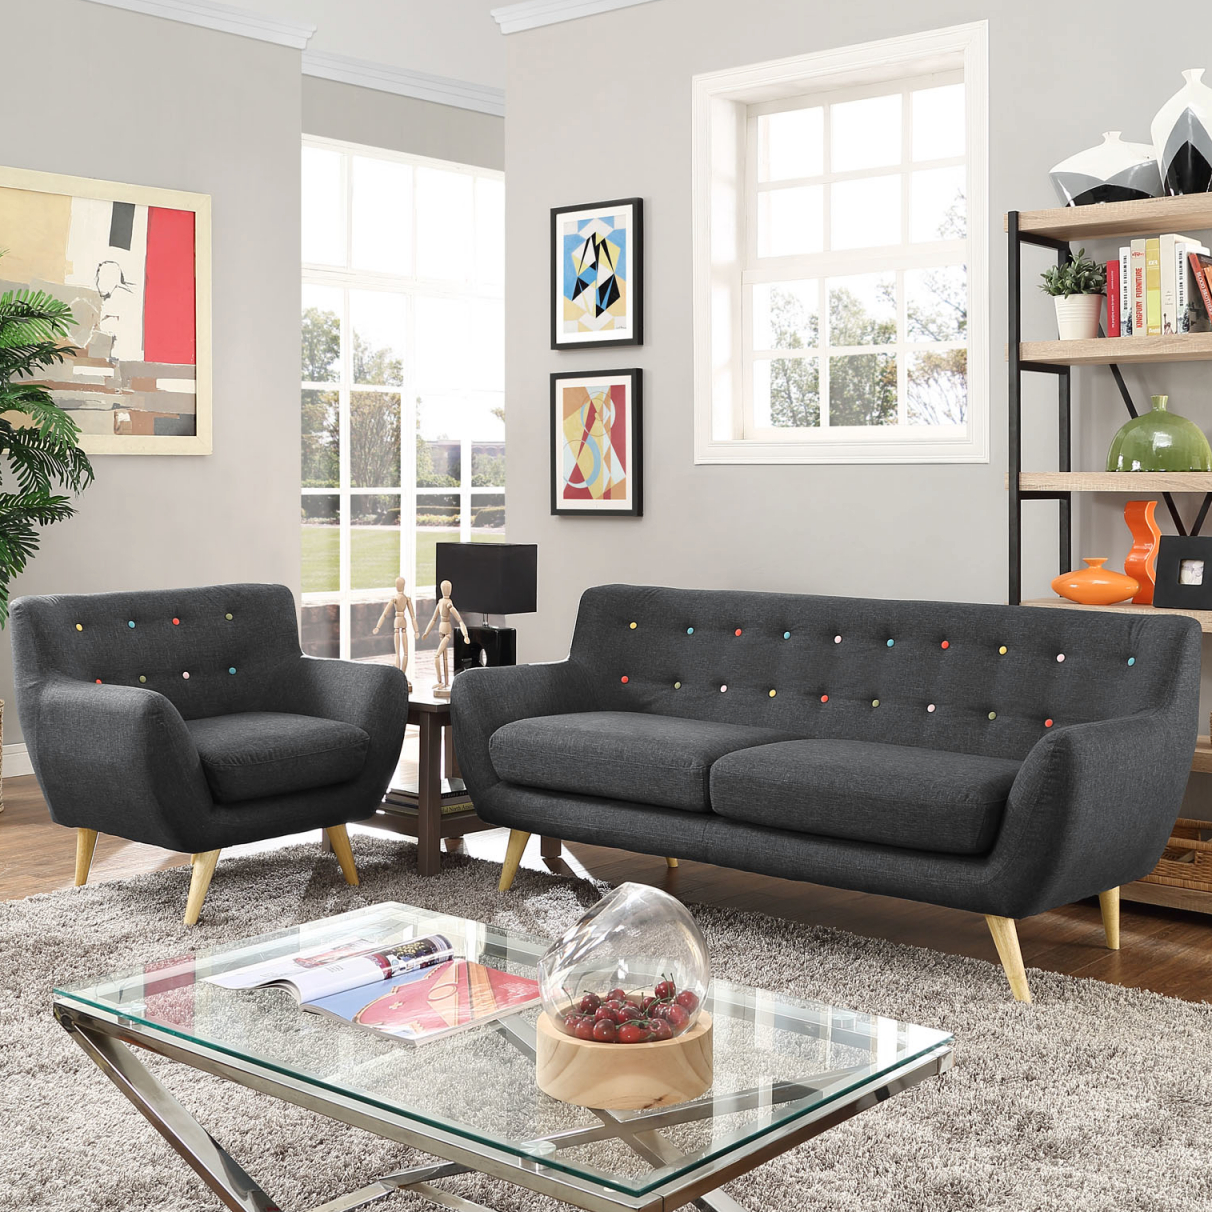 Modern & Contemporary Living Room Furniture | Allmodern pertaining to Awesome Modern Living Room Furniture Sets